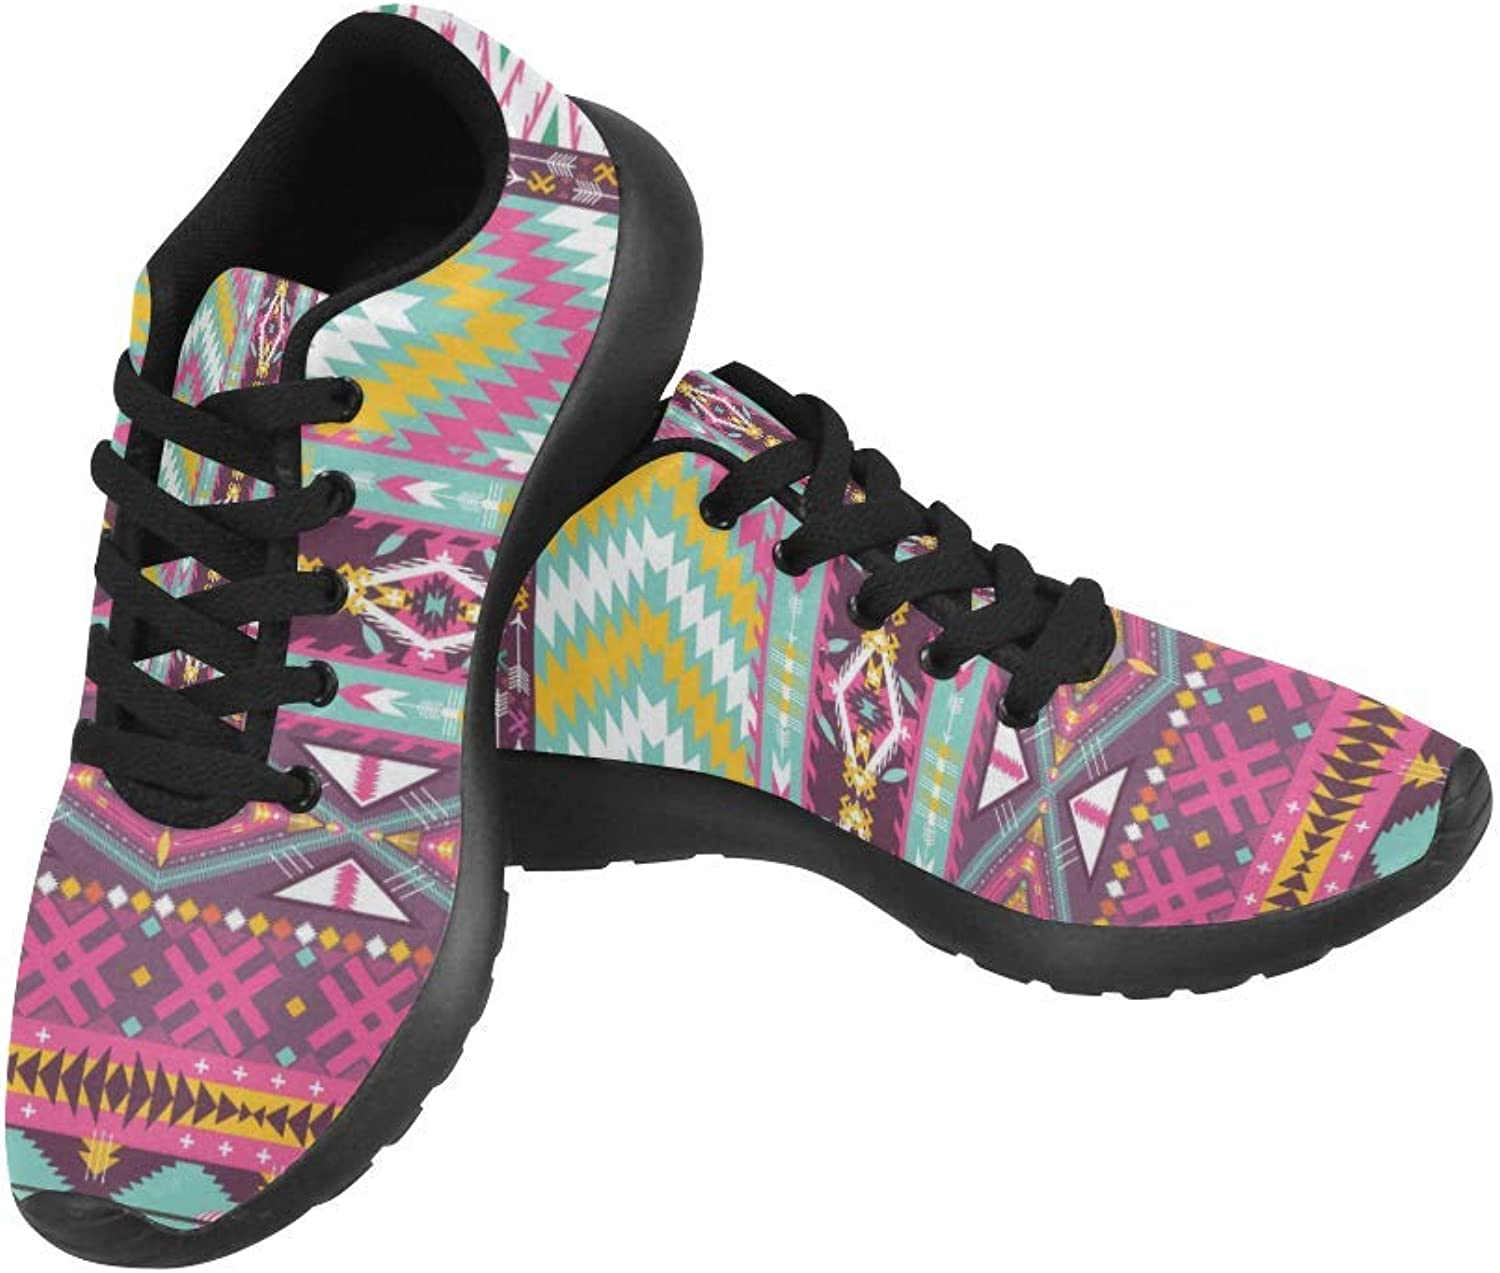 InterestPrint colorful Aztec Geometric Pattern Print on Women's Running shoes Casual Lightweight Athletic Sneakers US Size 6-15